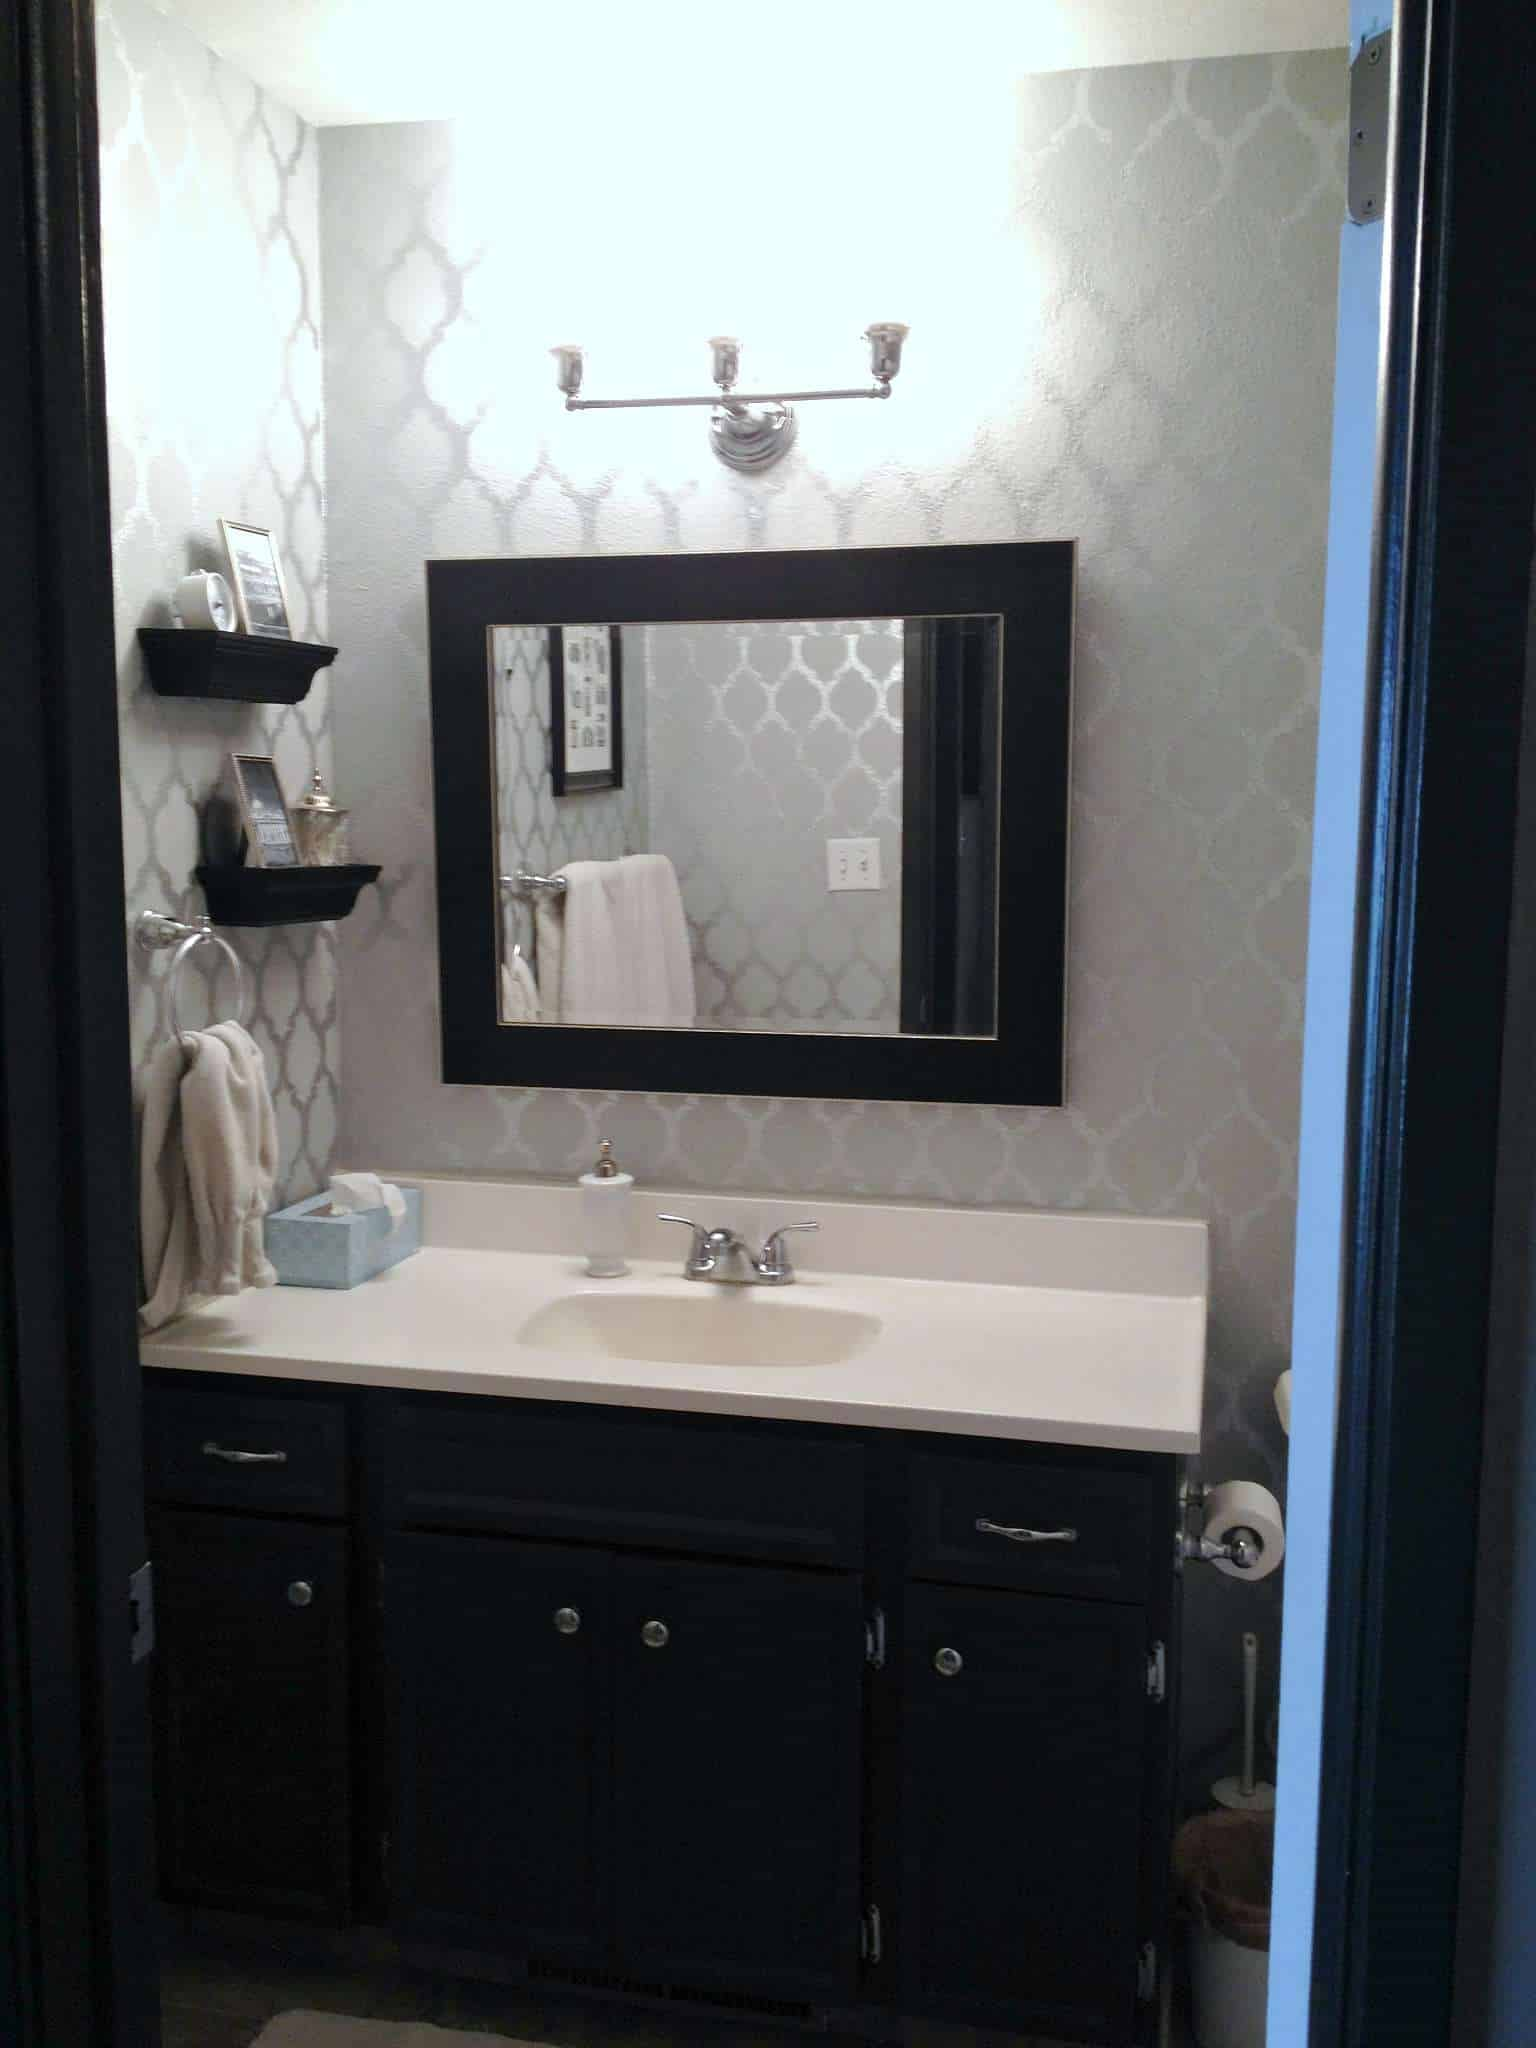 Bathroom Mirror Fixings Bathroom Home Tour At Home With Ashley